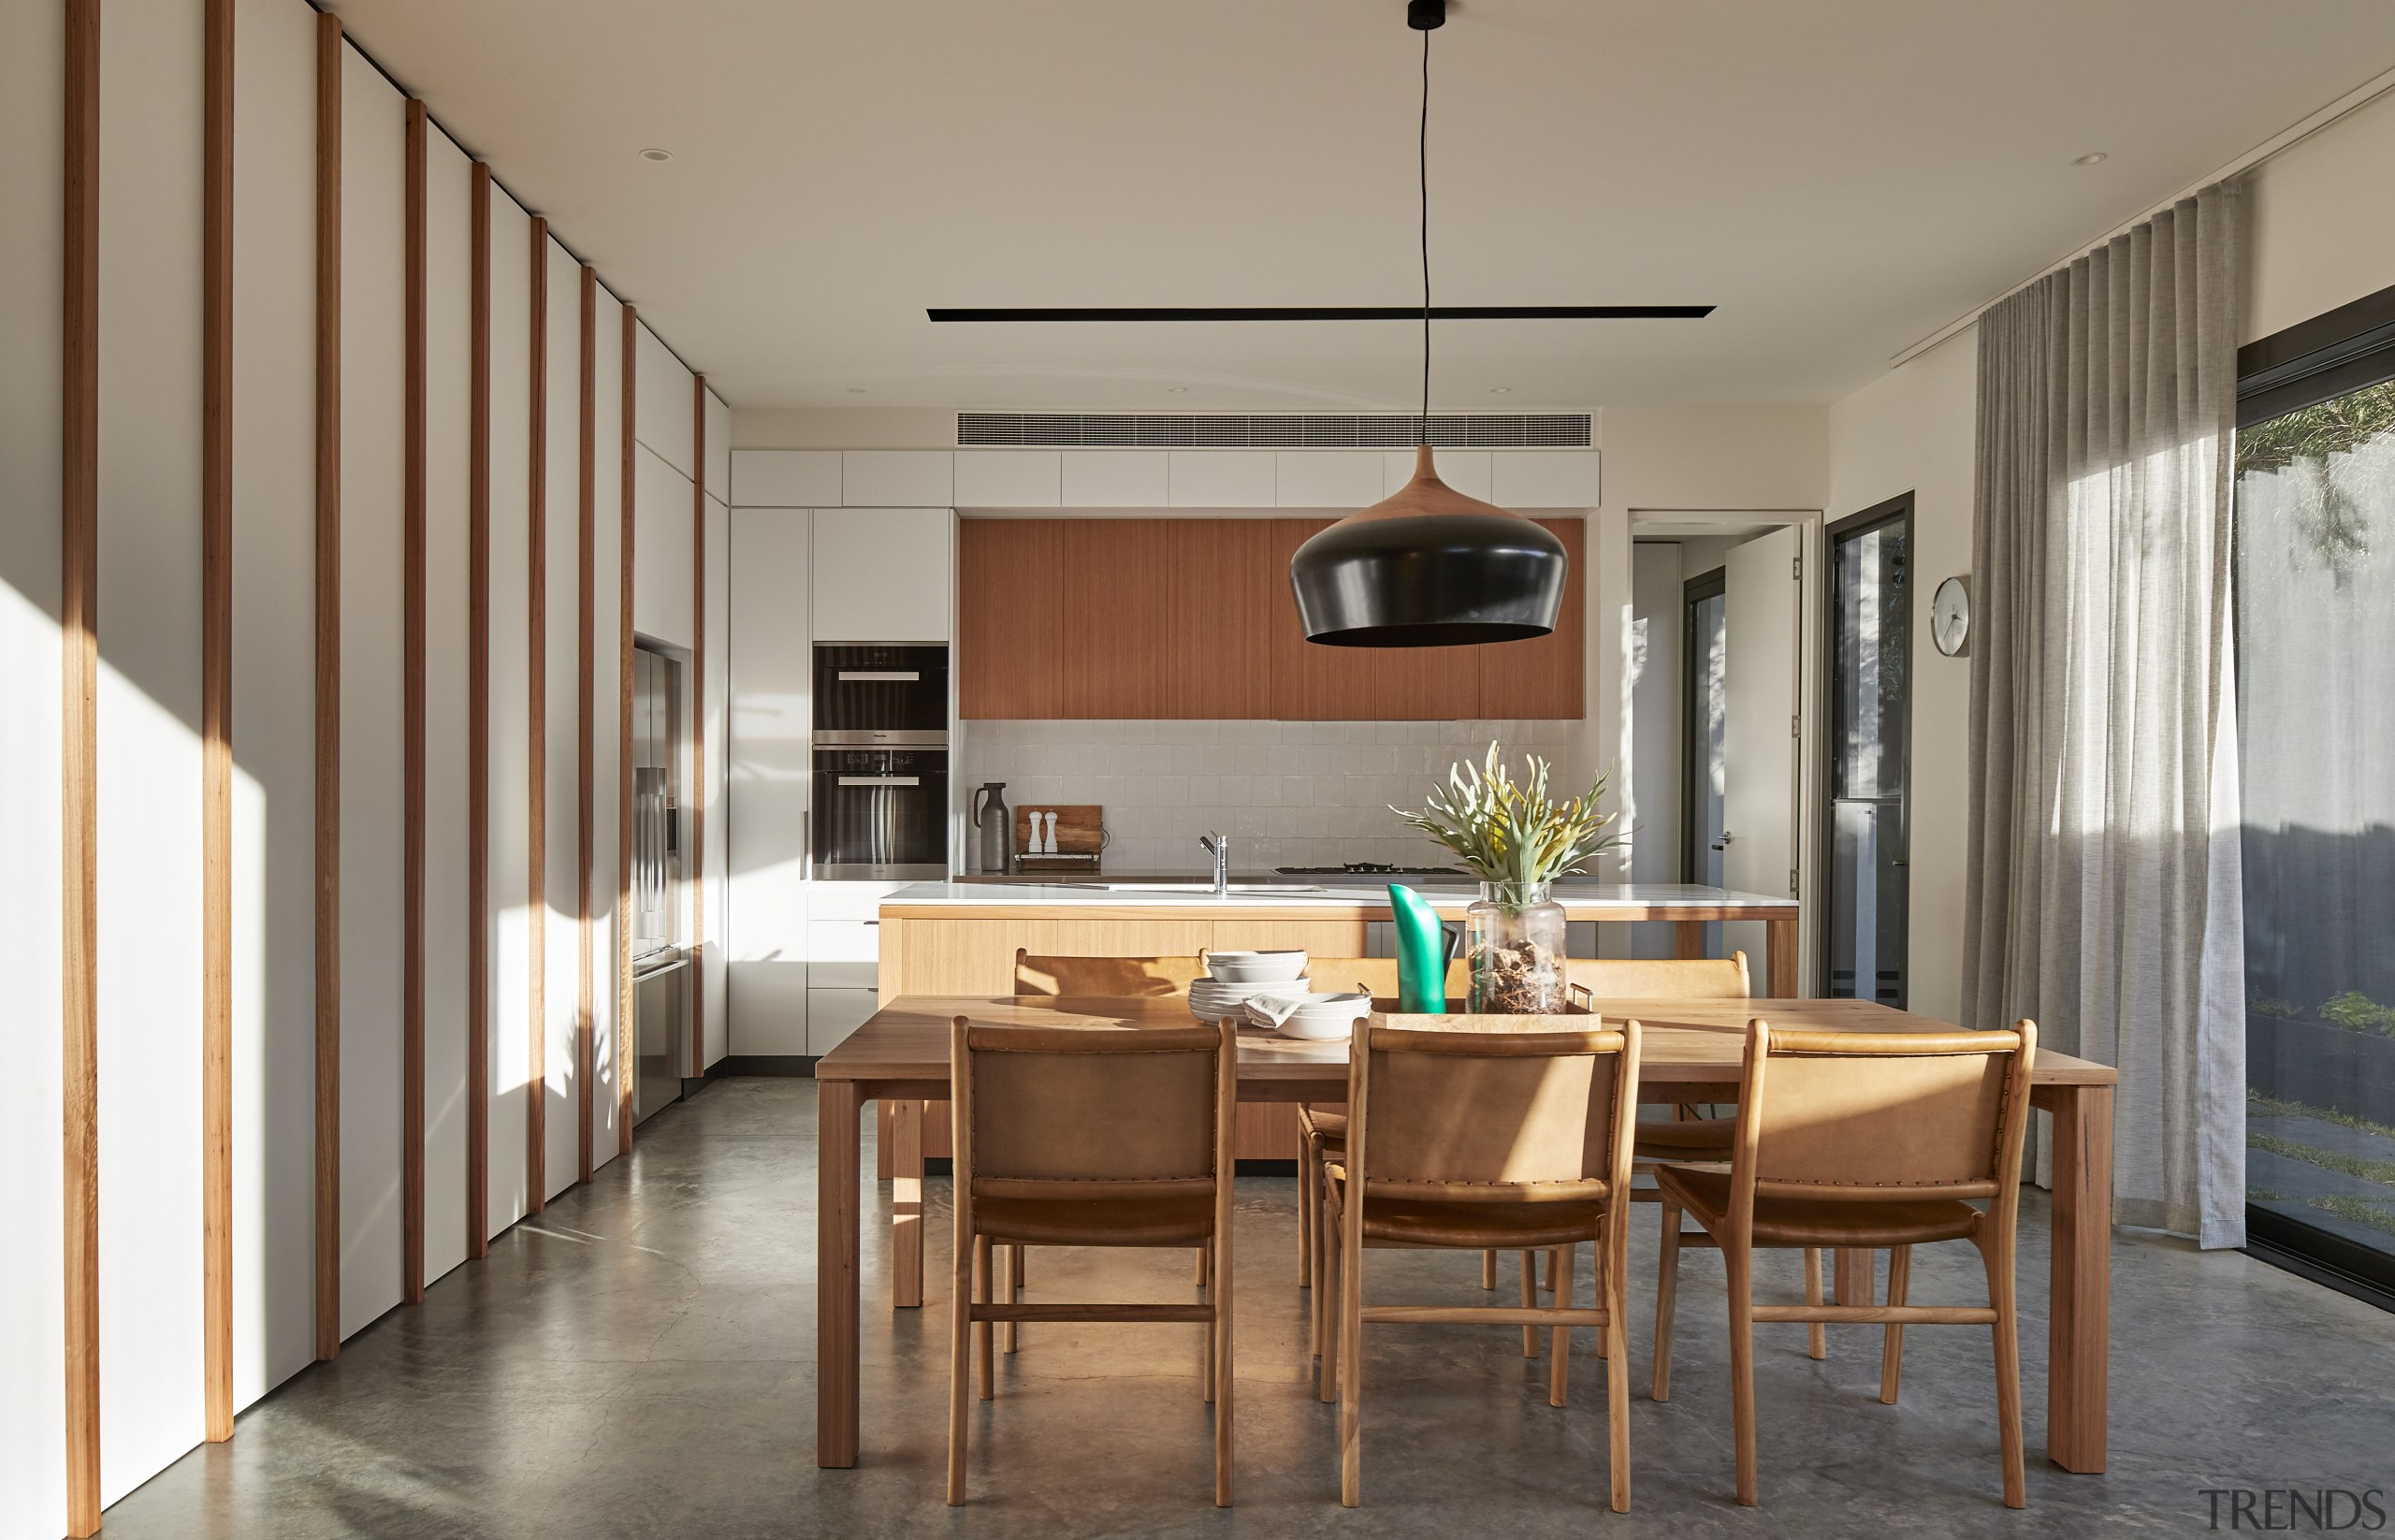 The kitchen and dining area in the contemporary architecture, building, cabinetry, ceiling, countertop, cupboard, dining room, door, floor, flooring, furniture, hardwood, home, house, interior design, kitchen, light fixture, lighting, living room, material property, property, real estate, room, table, wall, wood, wood flooring, gray